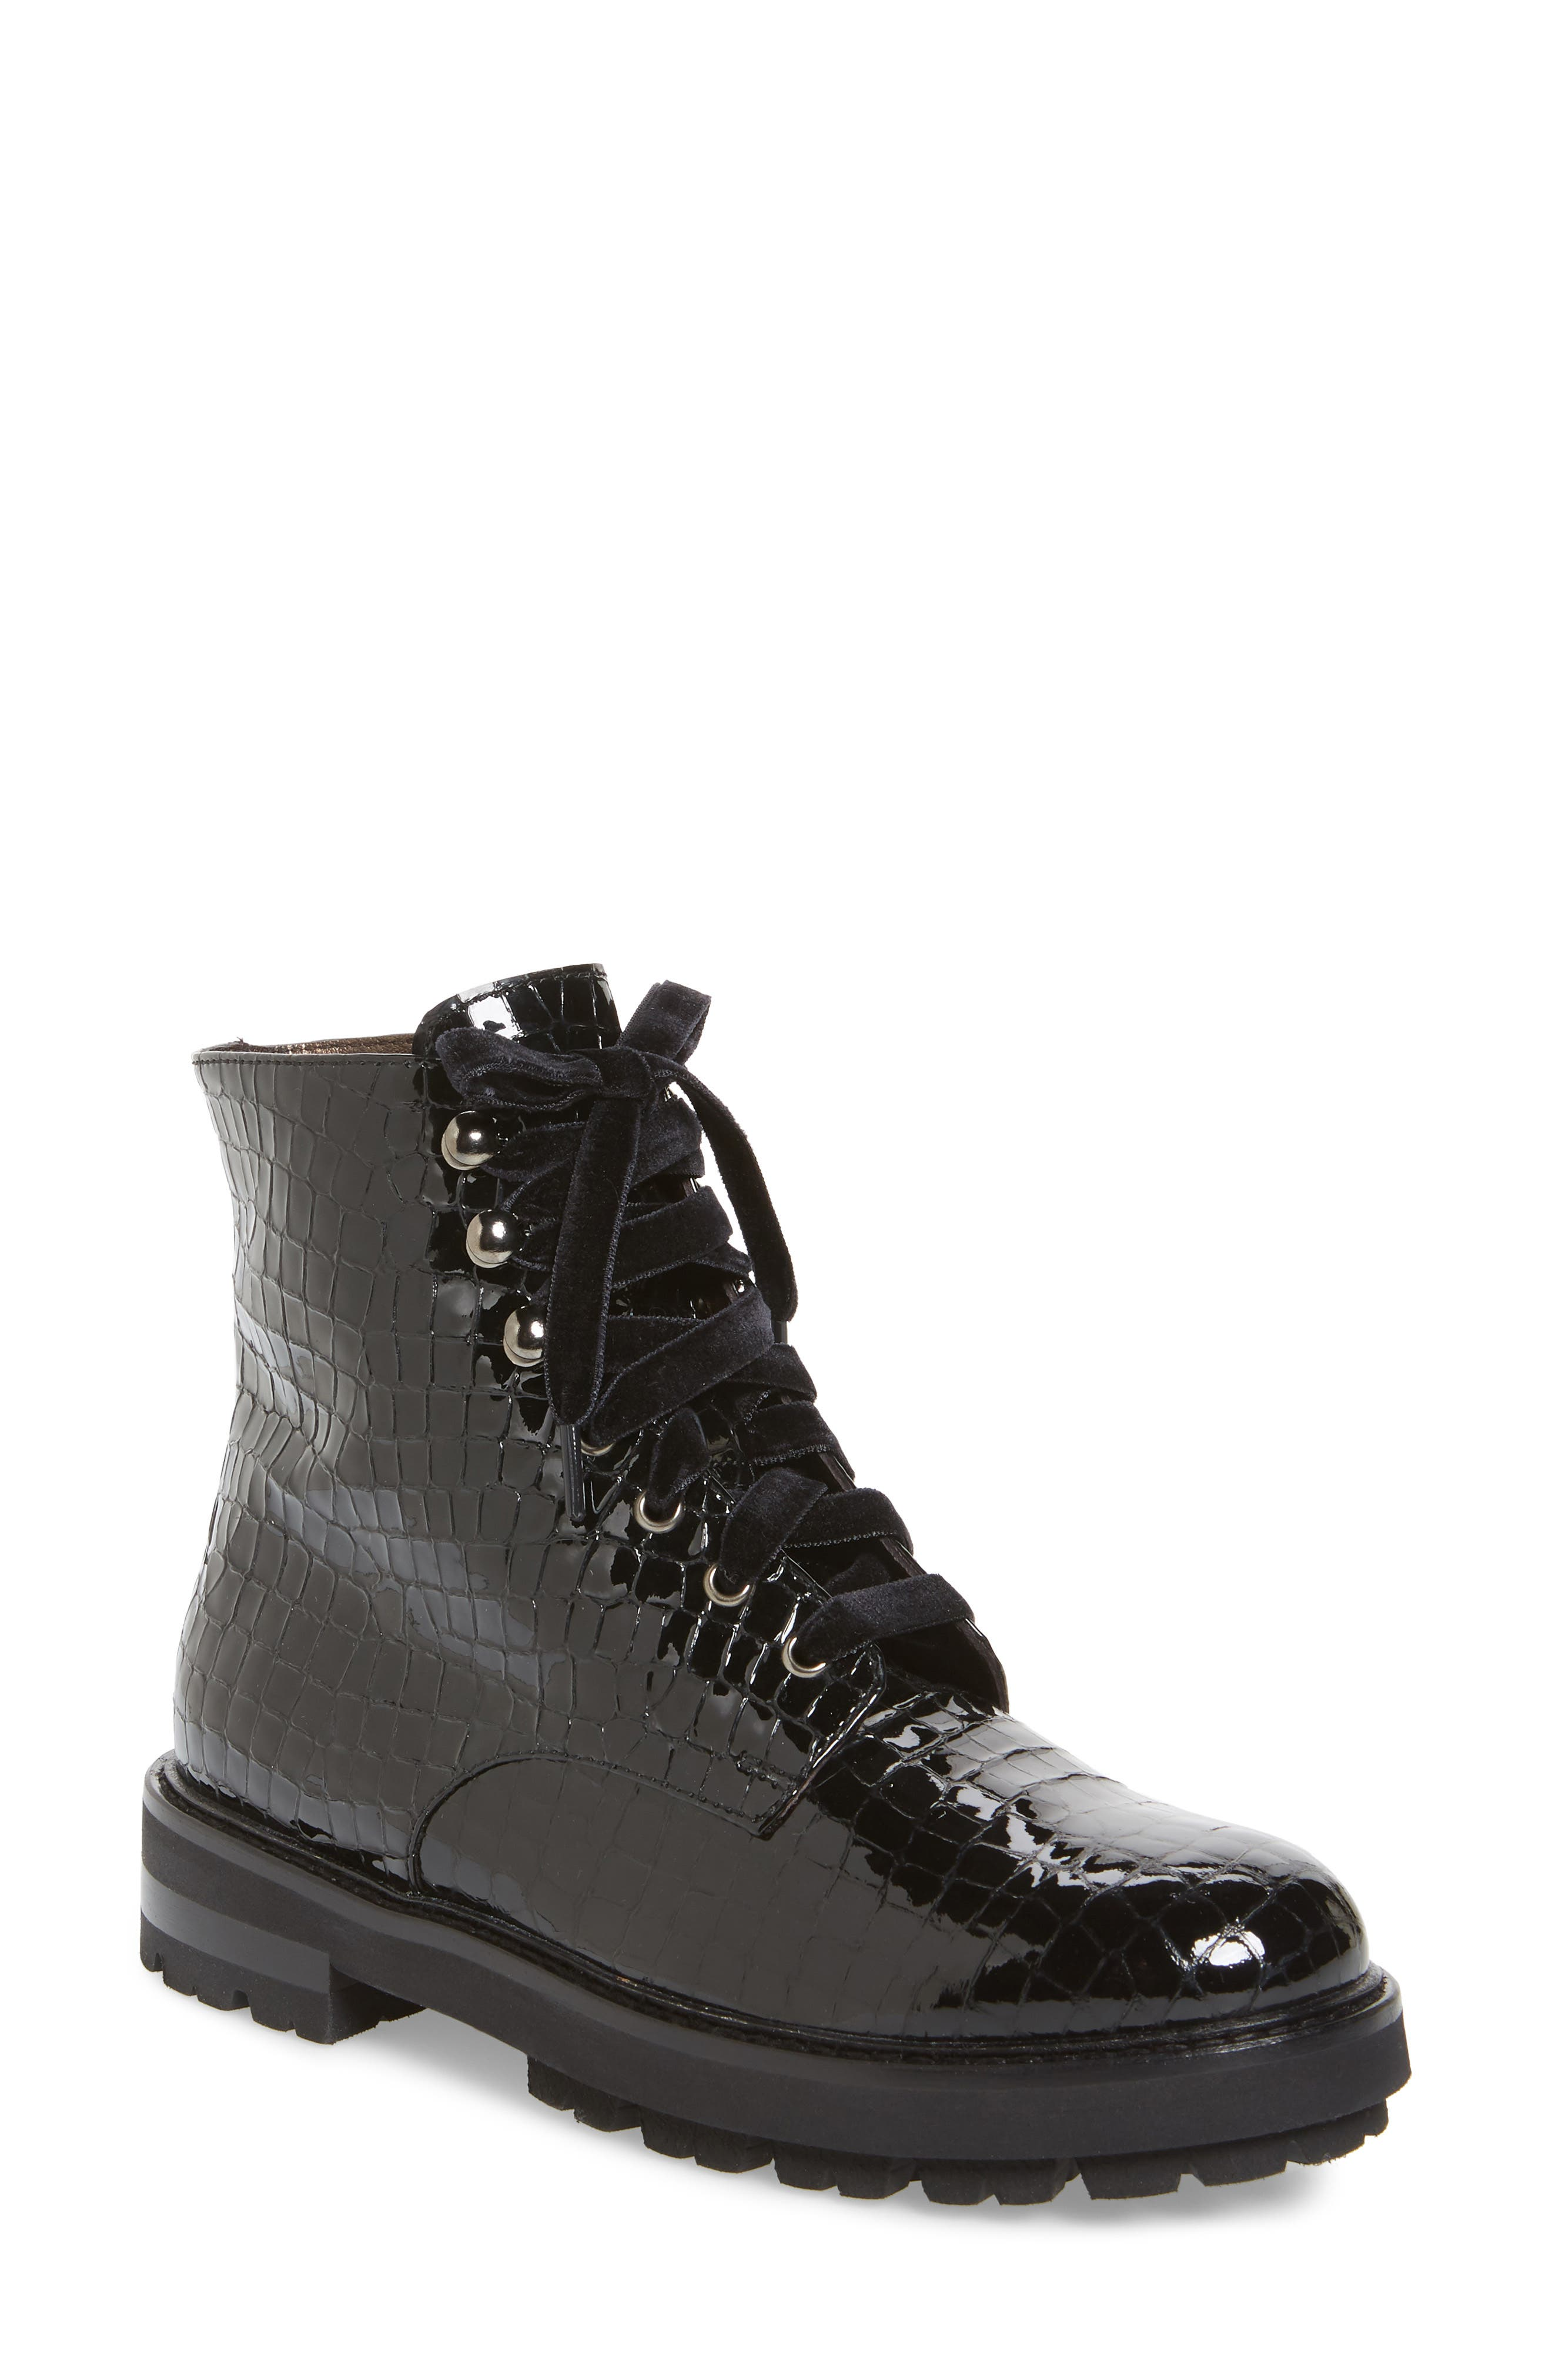 AGL ATTILIO GIUSTI LEOMBRUNI Combat Boot, Black Croc Leather